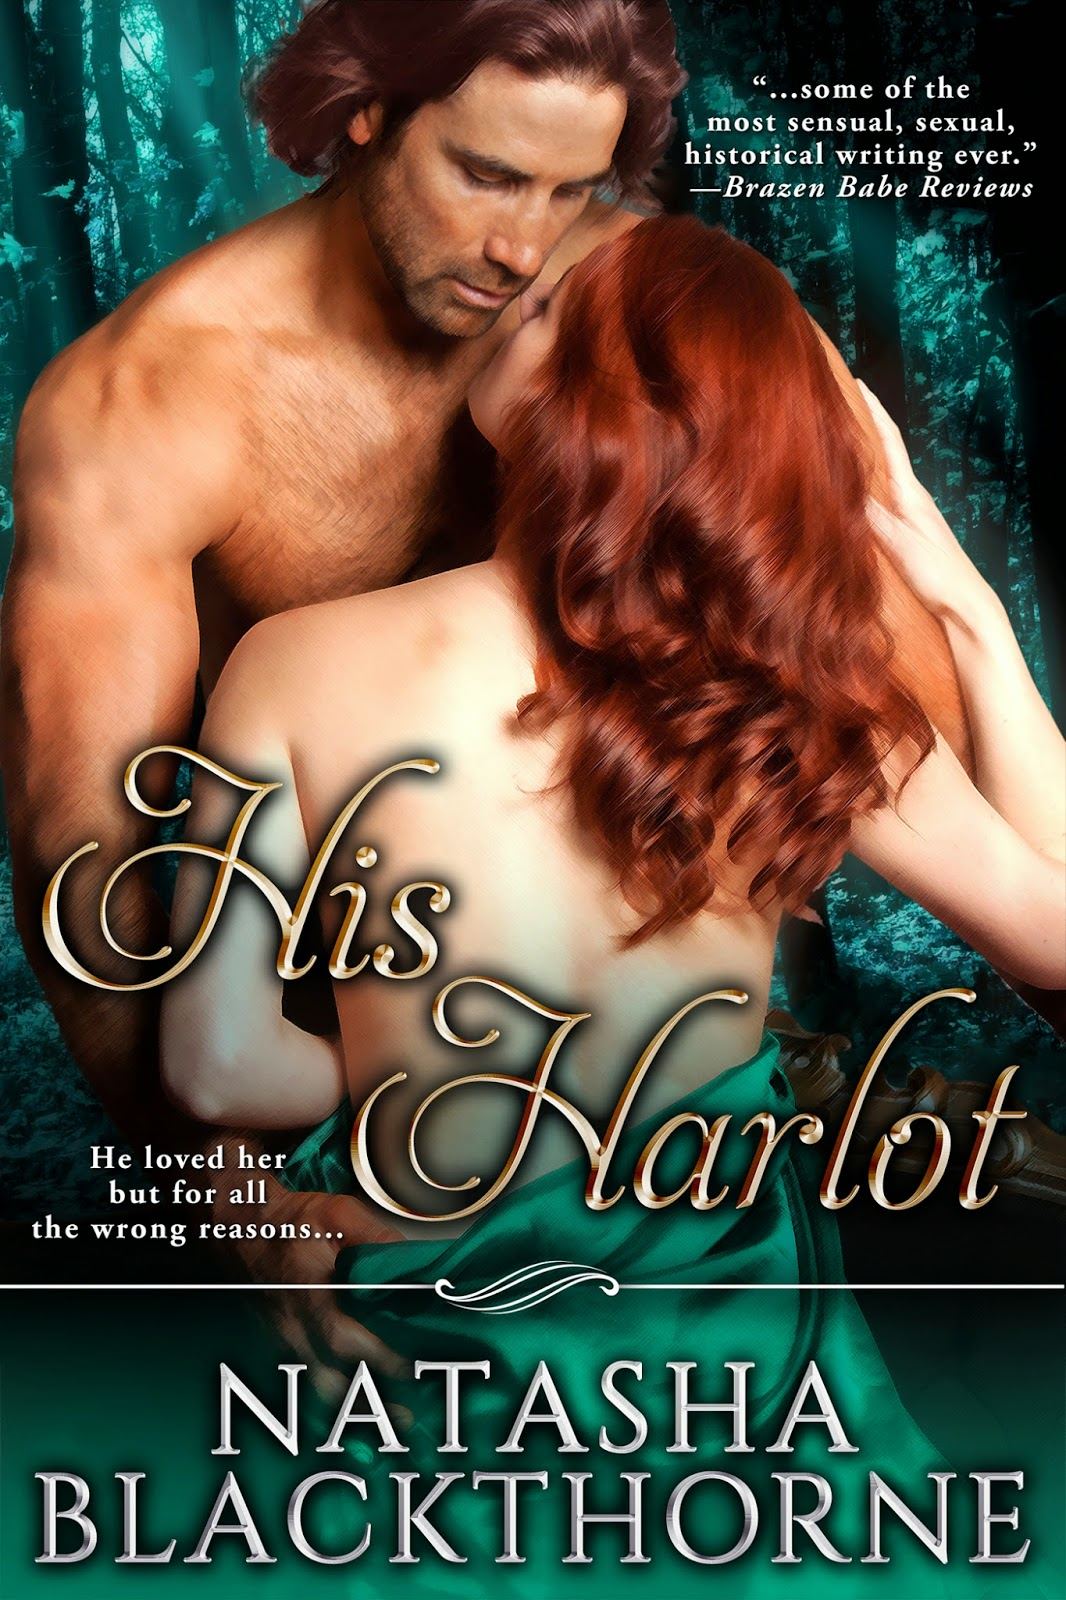 http://www.amazon.com/His-Harlot-A-Midsummers-Sin-ebook/dp/B00FQMZDZY/ref=pd_sim_kstore_6?ie=UTF8&refRID=13QPMF82BV1MSS58CT09